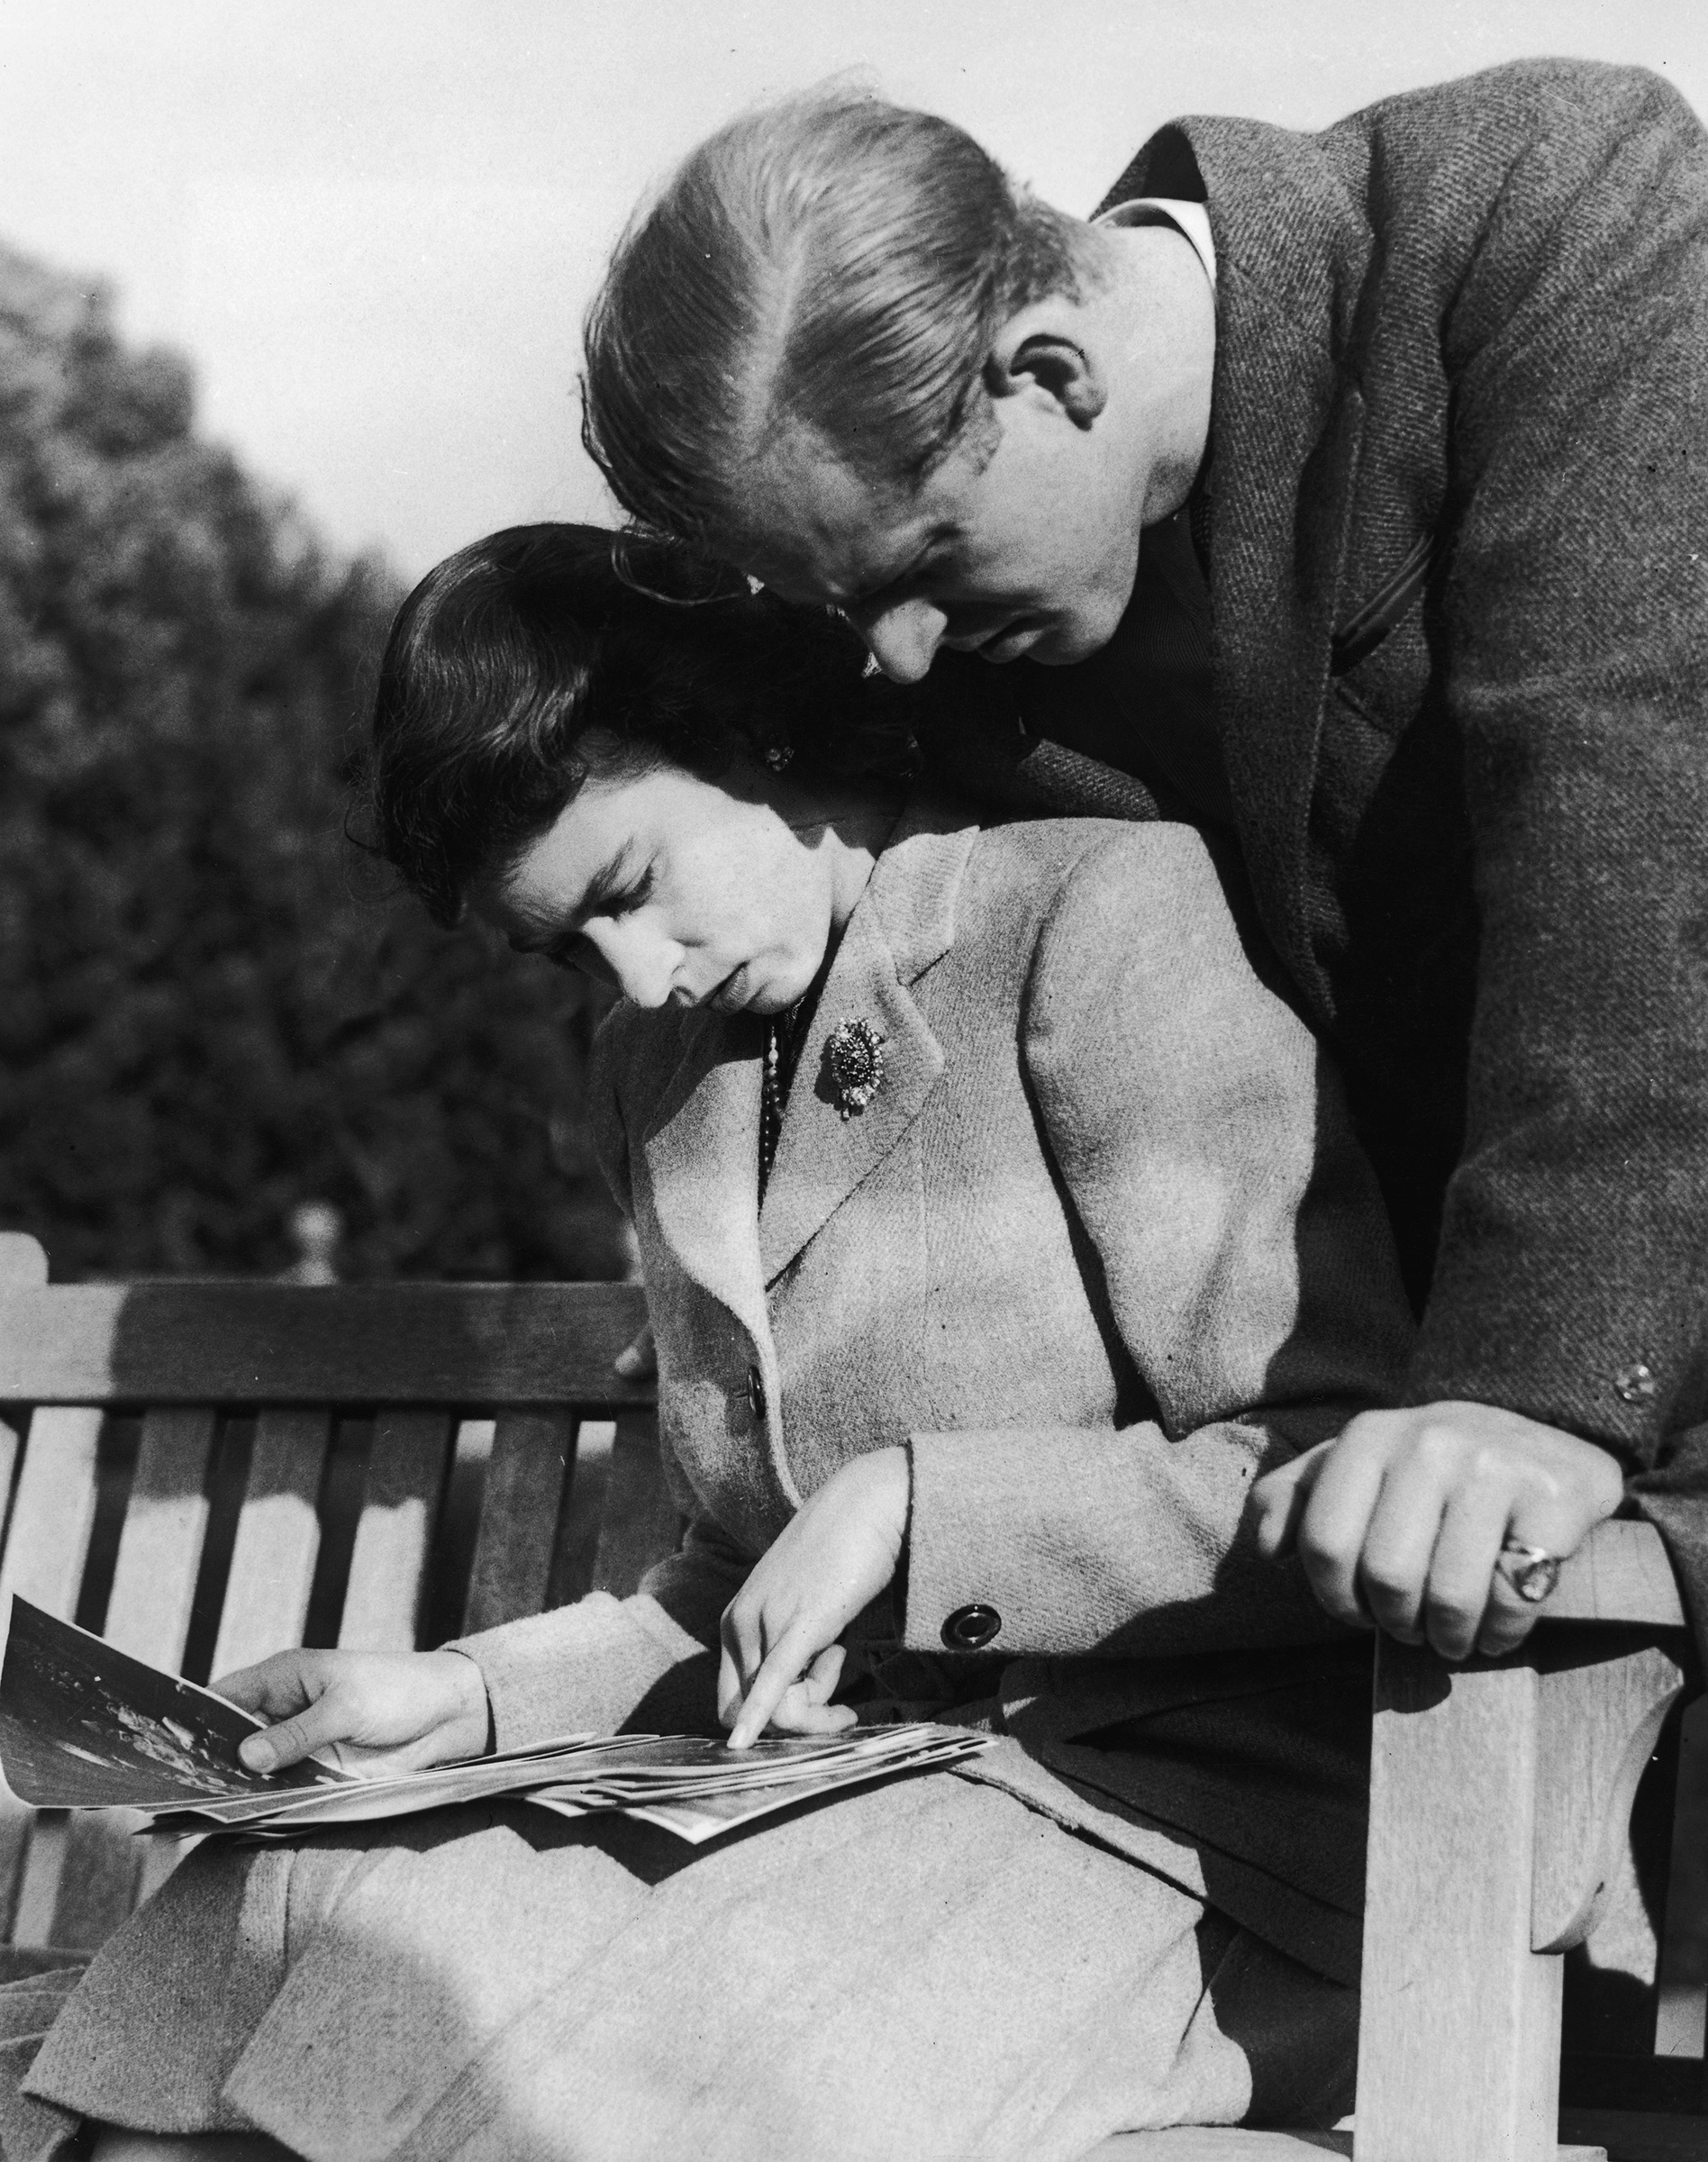 Princess Elizabeth and Philip Mountbatten, Duke of Edinburgh, look at their wedding photographs while on honeymoon in Romsey, Hampshire, Nov. 1947.